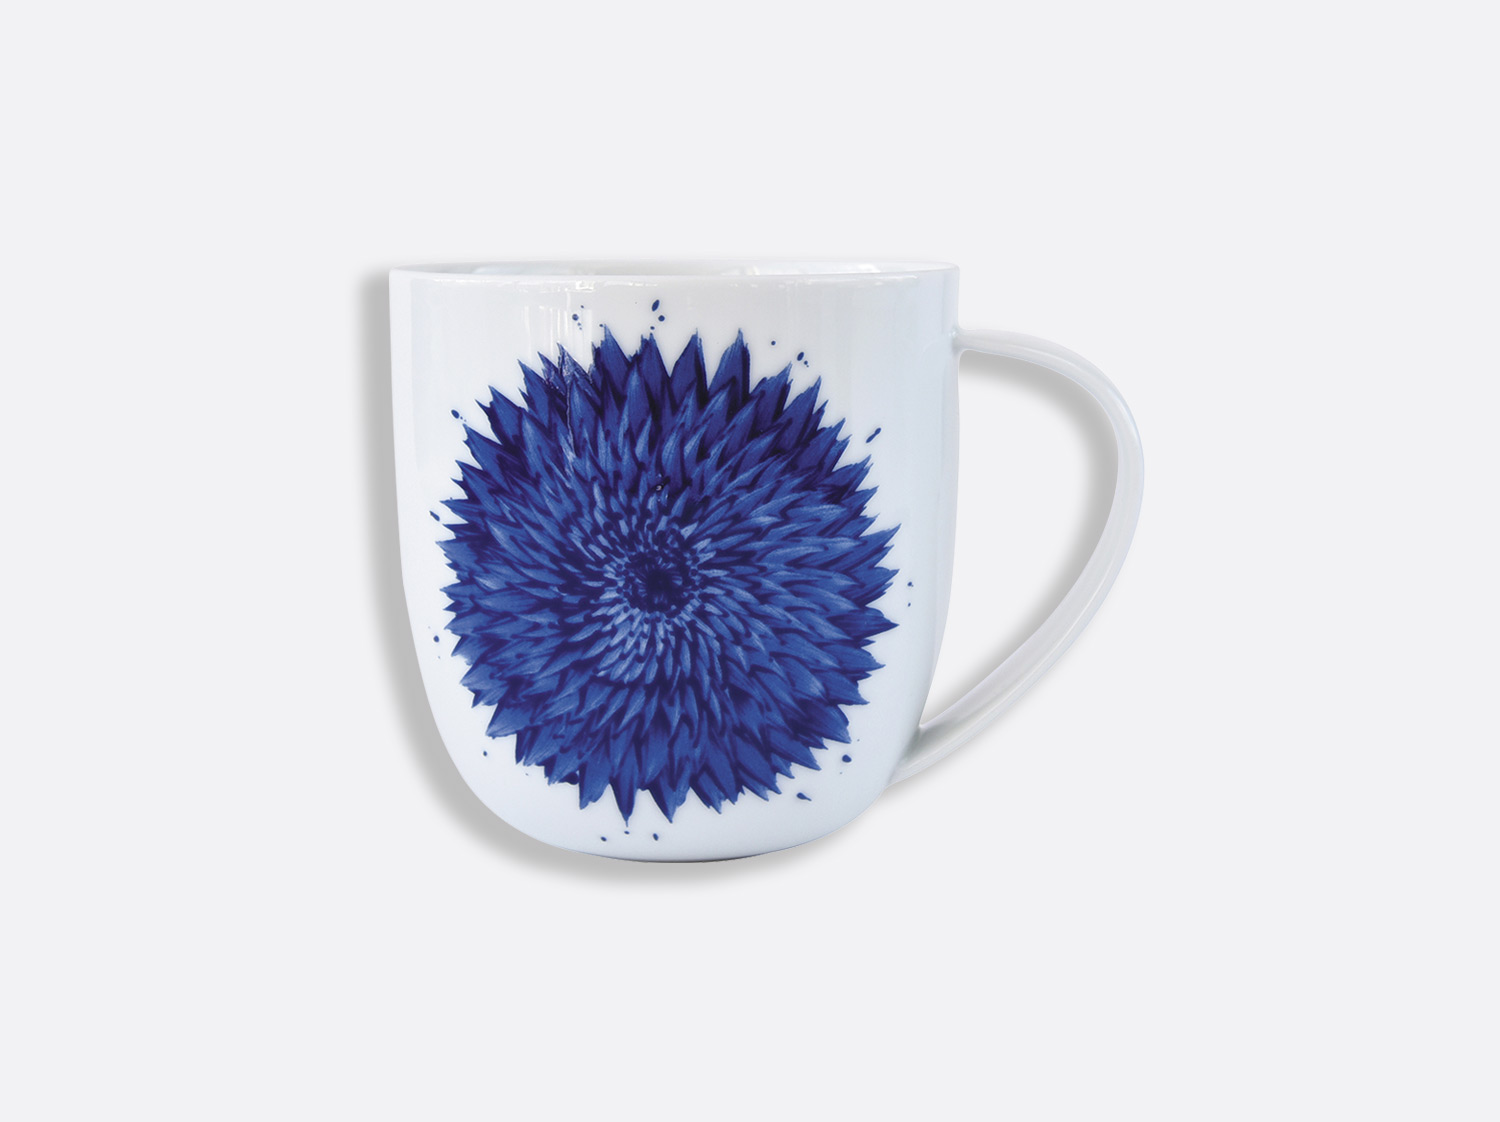 Mug Bleu en porcelaine de la collection IN BLOOM - Zemer Peled Bernardaud